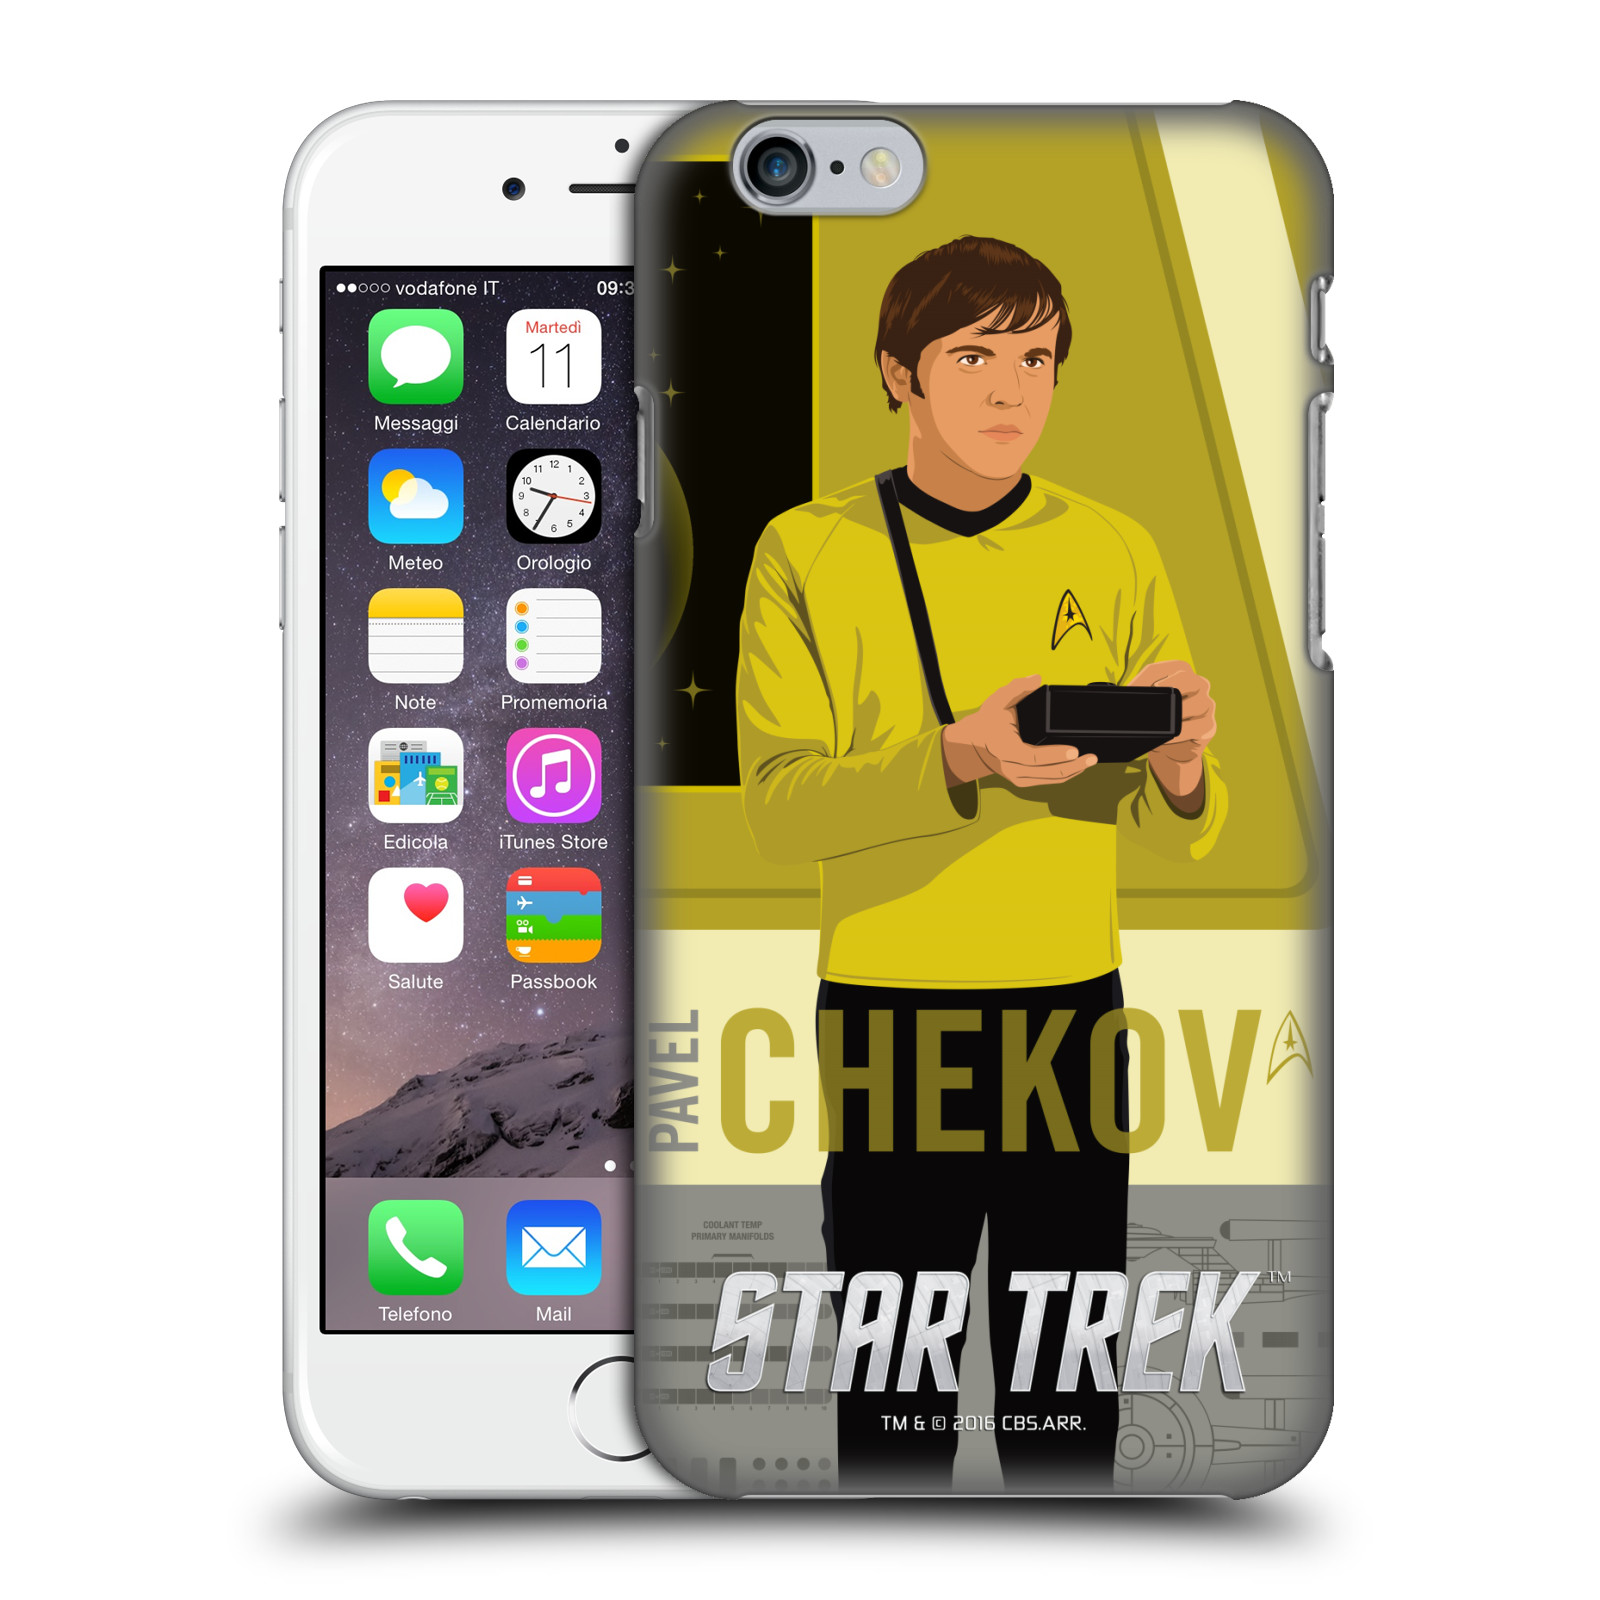 Star Trek Iconic Characters TOS-Chekov